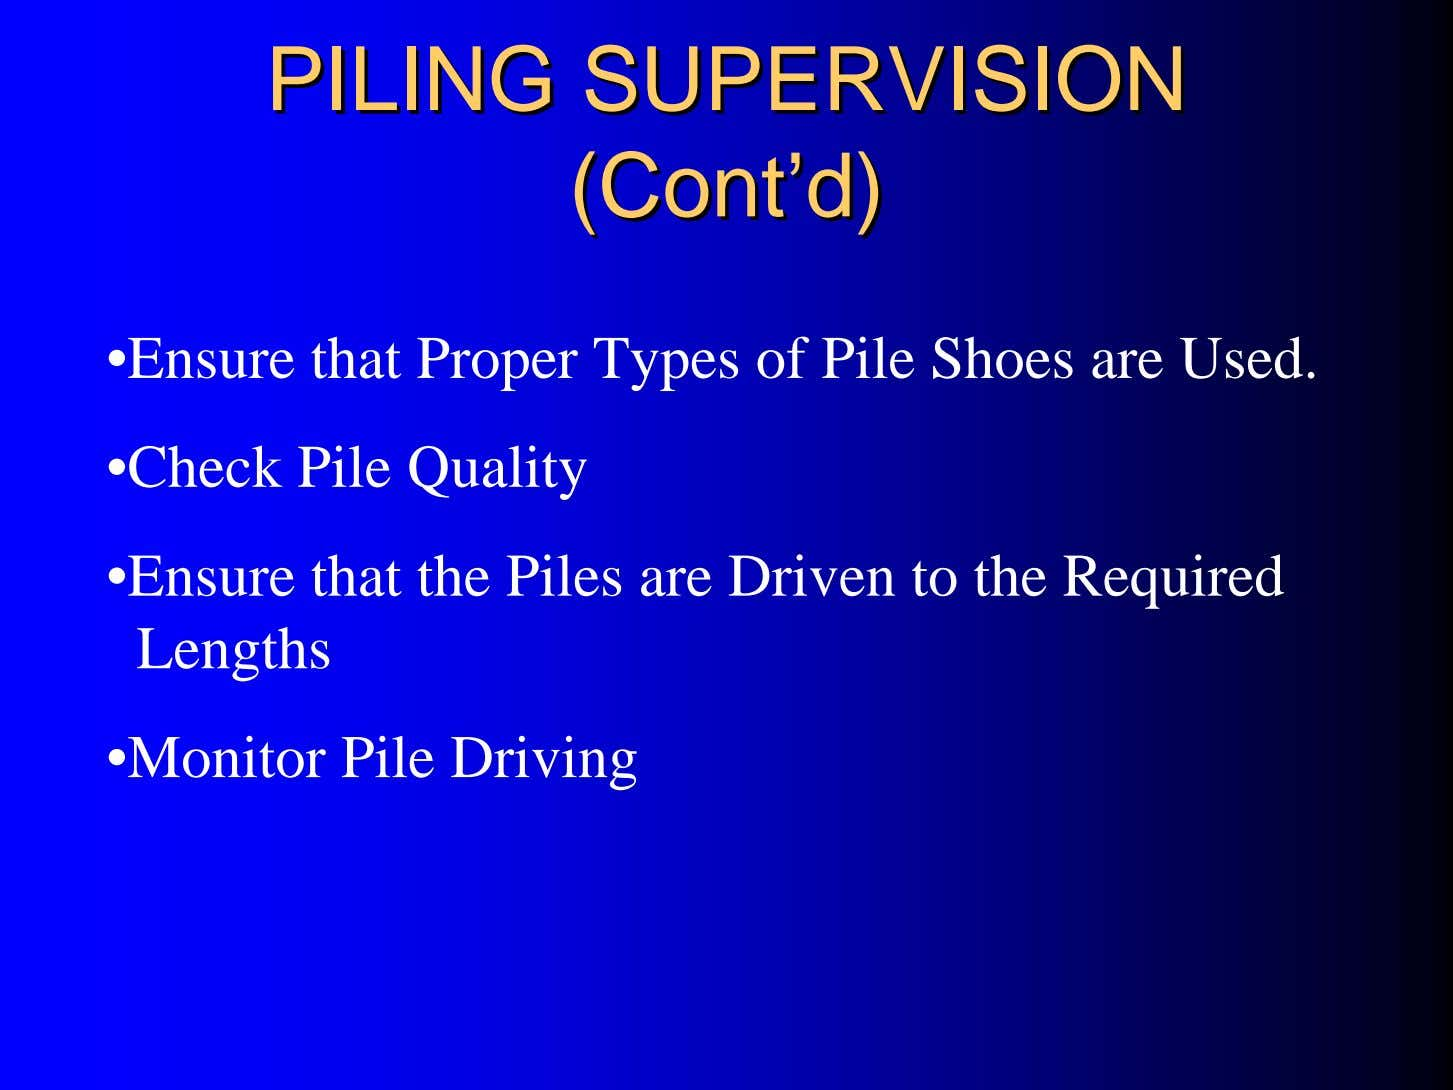 PILINGPILING SUPERVISIONSUPERVISION (Cont(Cont''d)d) •Ensure that Proper Types of Pile Shoes are Used. •Check